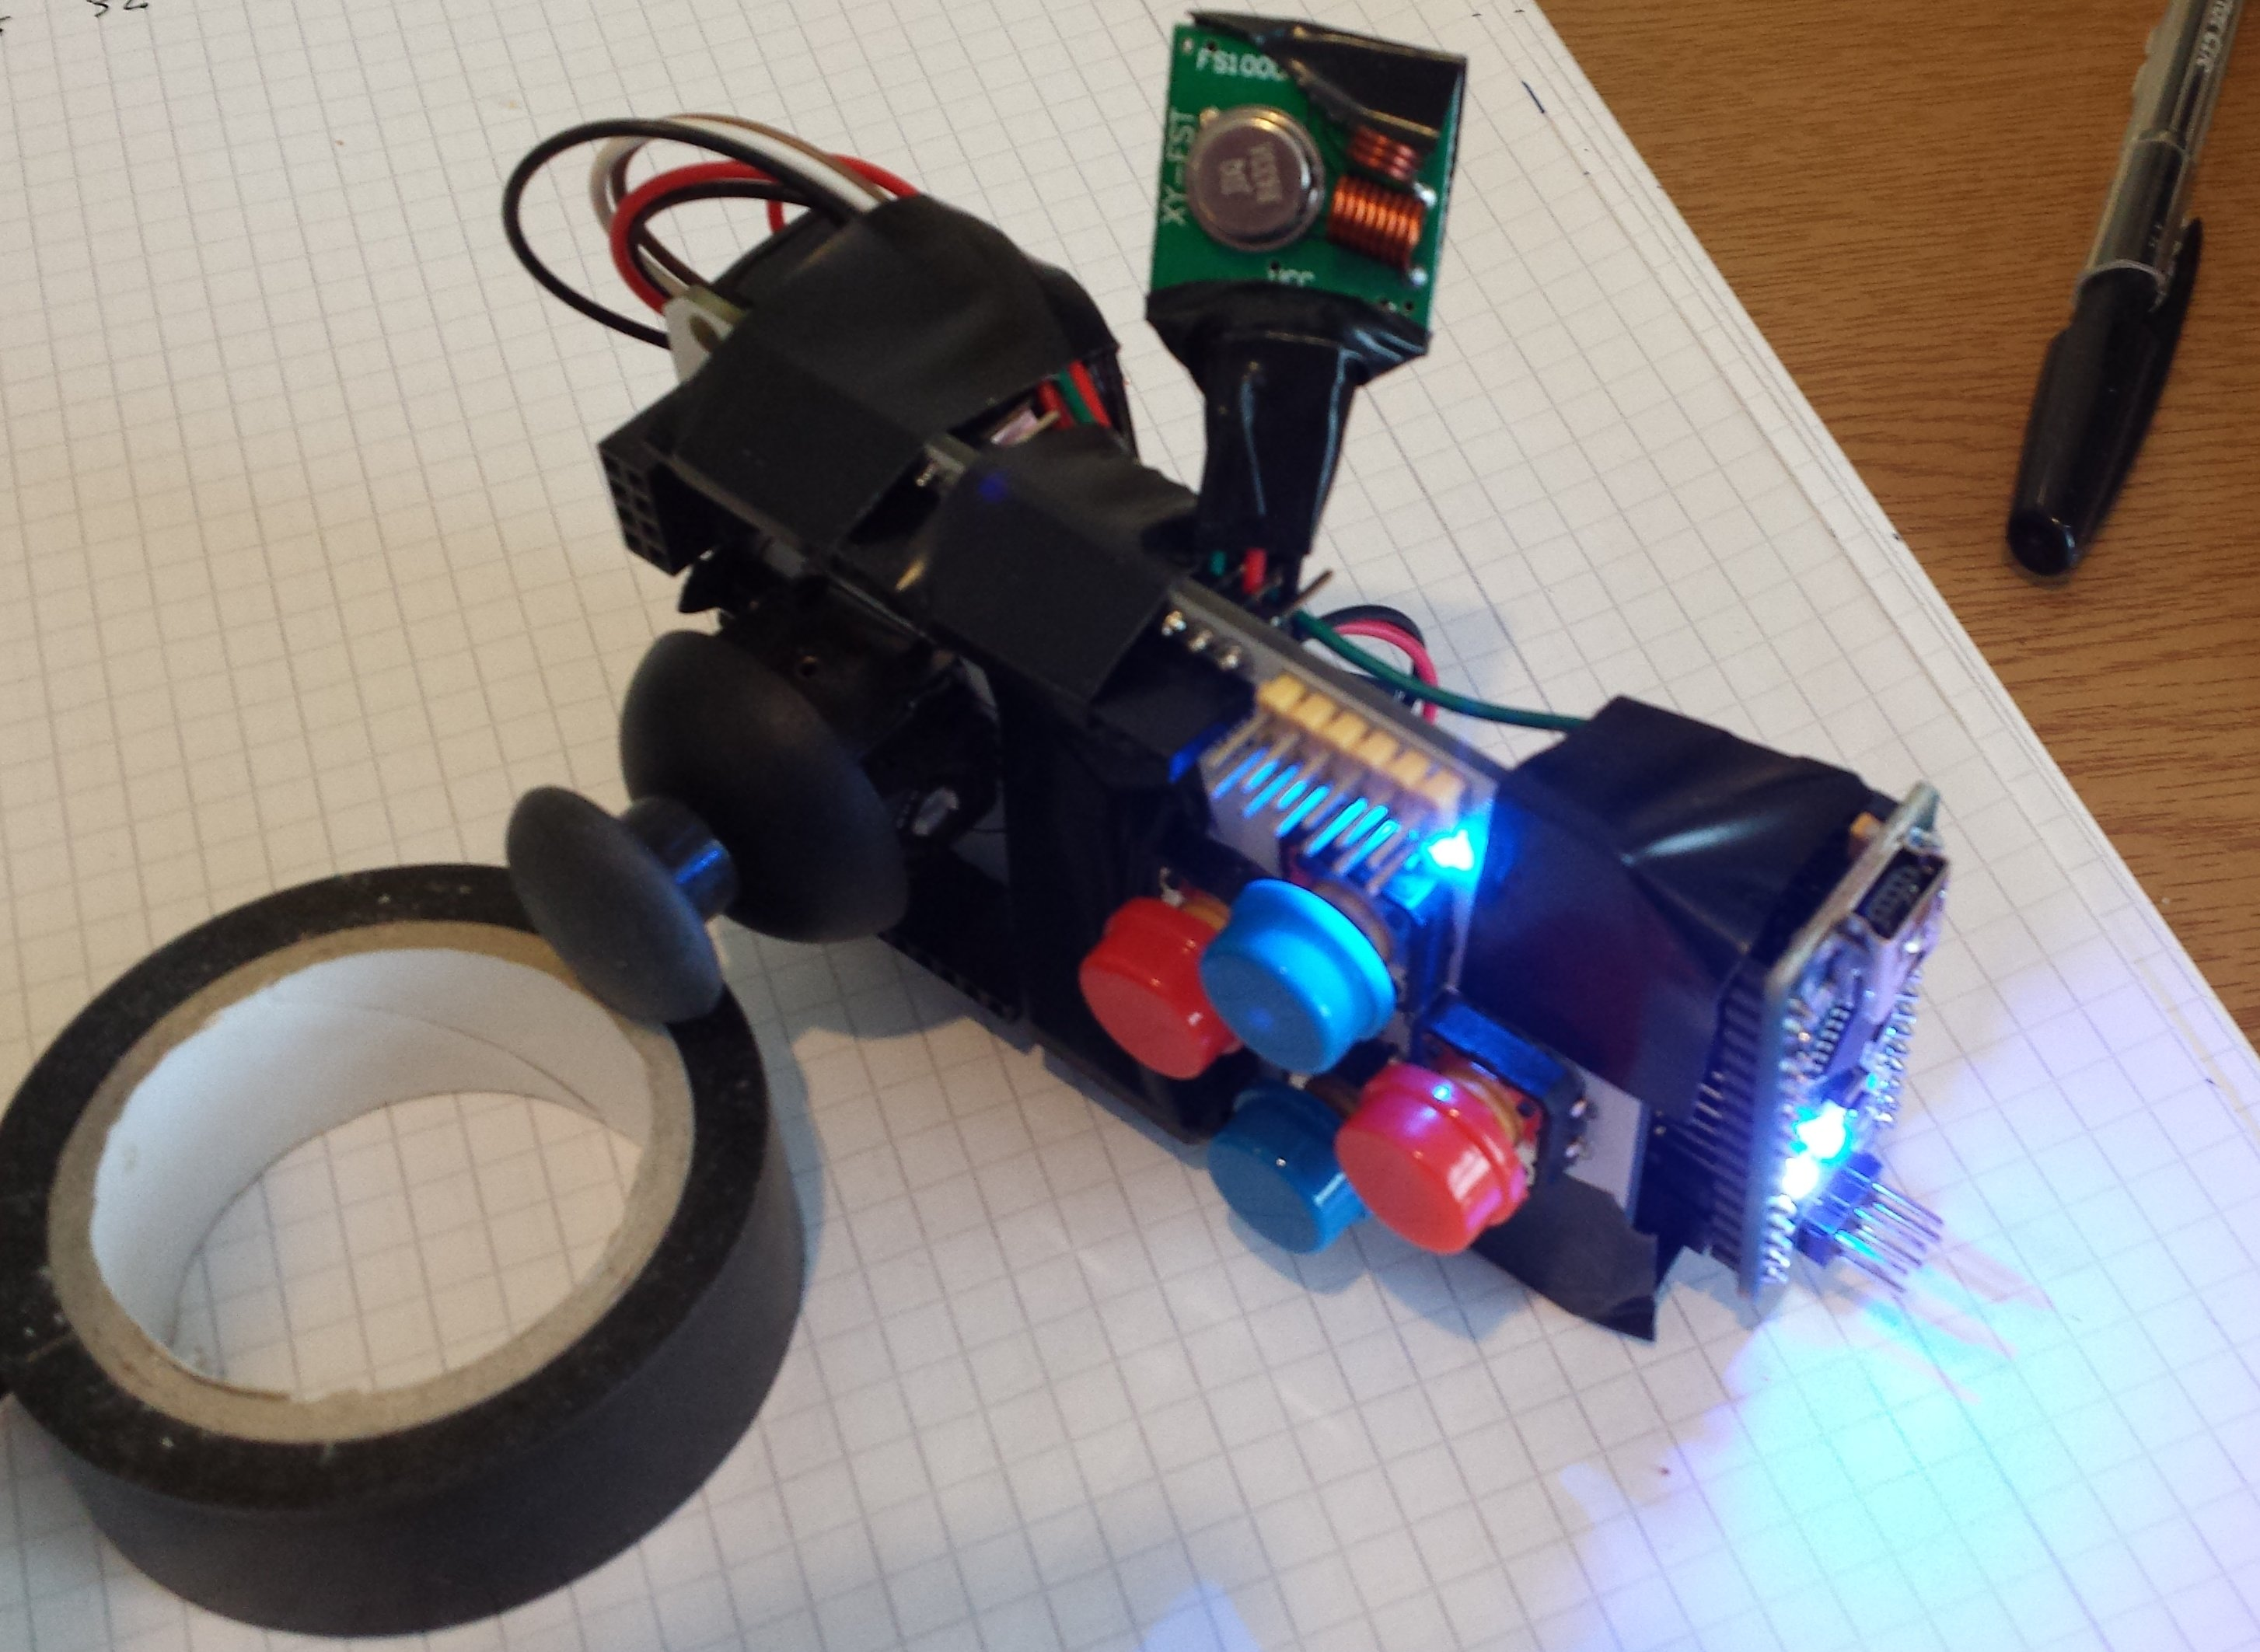 Remote Control Implementation For An Rc Car Part 1 Cross Dominant Controlled Toy Circuit With Transceiver Module Control2 We Are Now Successfully Receiving And Interpreting Those Messages On The